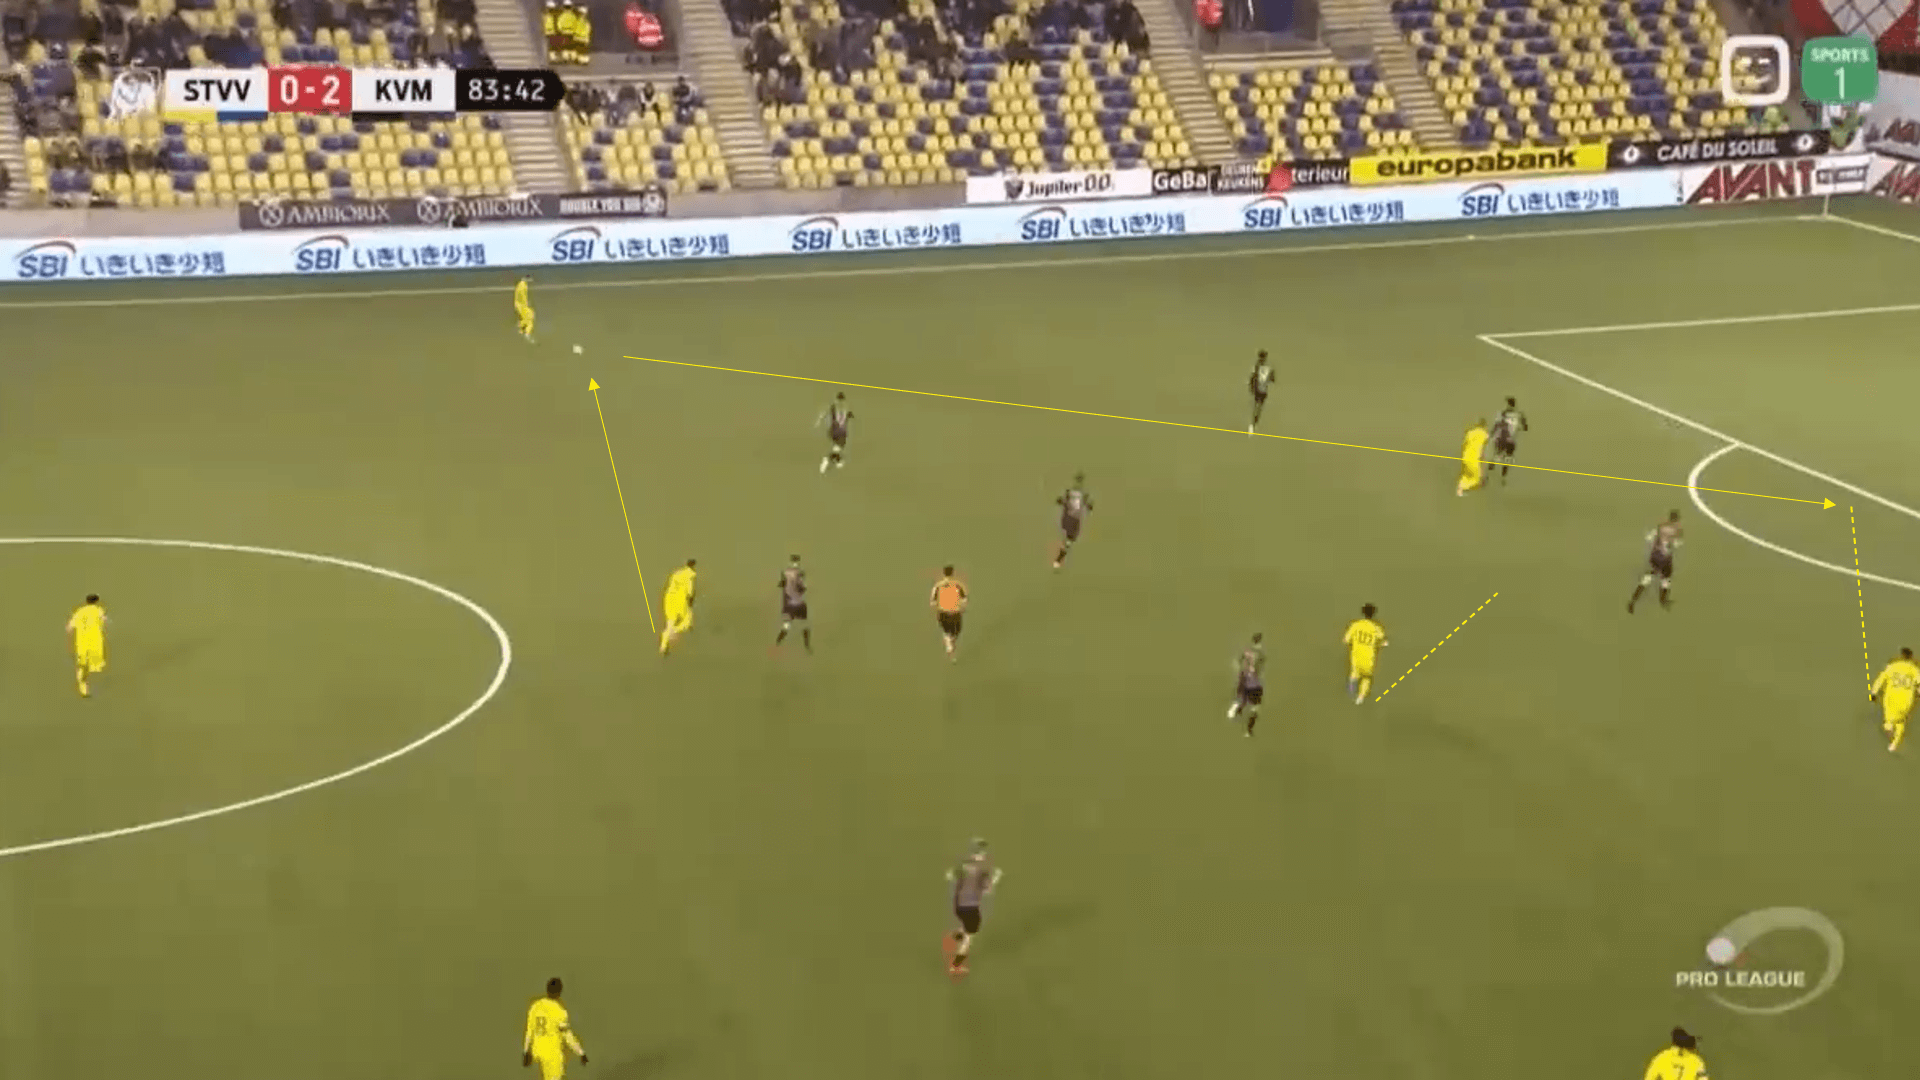 Sint-Truiden 2019/20 - scout report - tactical analysis tactics